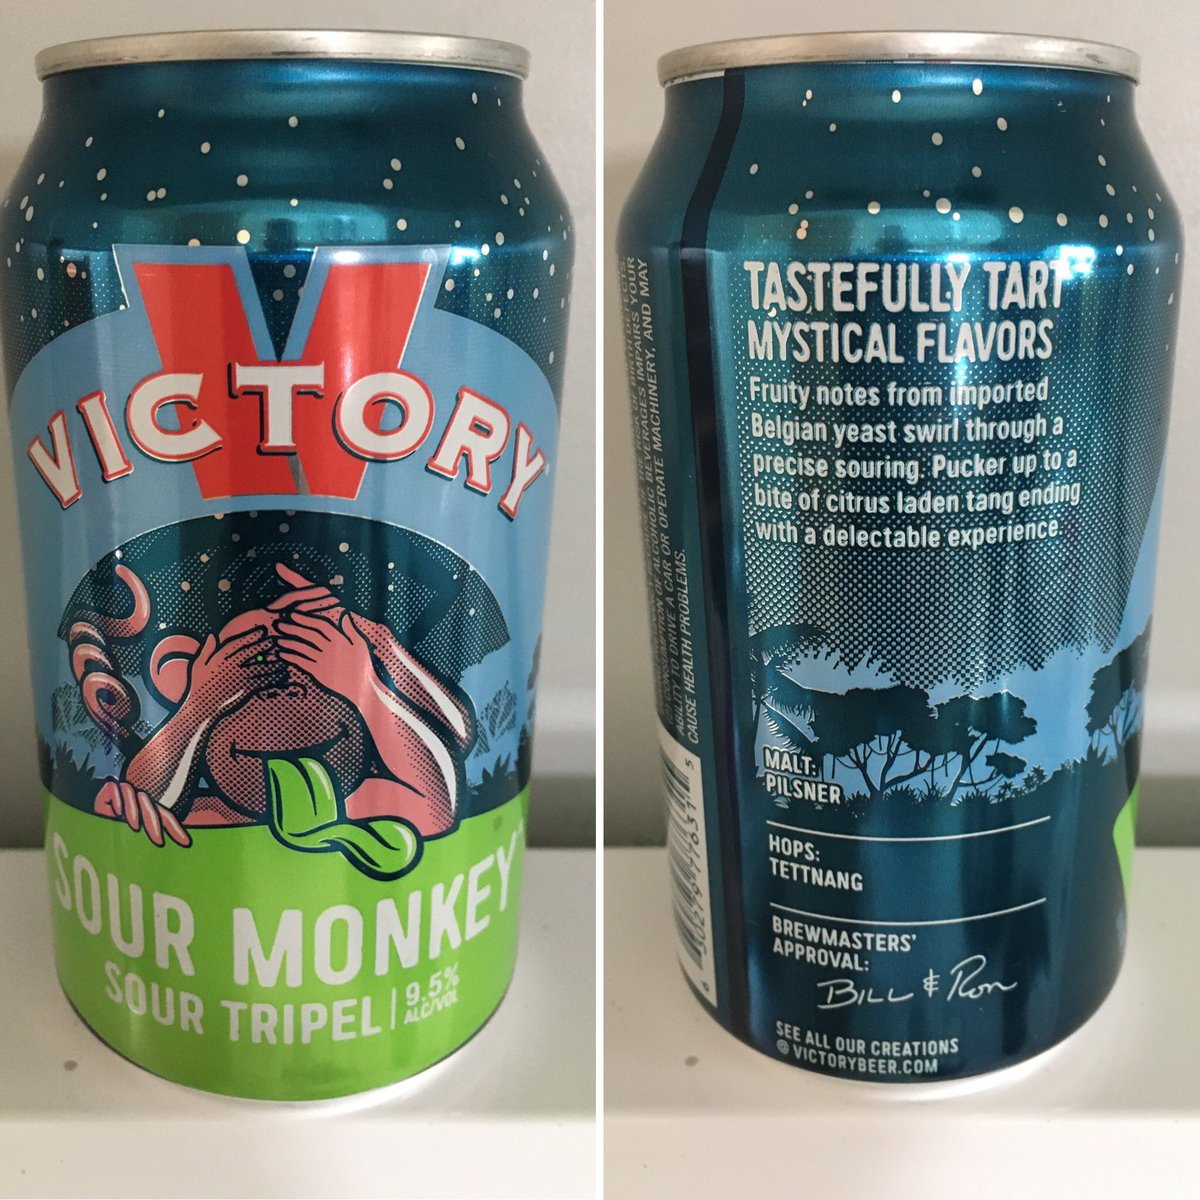 @VictoryBeer Sour Monkey #canmuseum